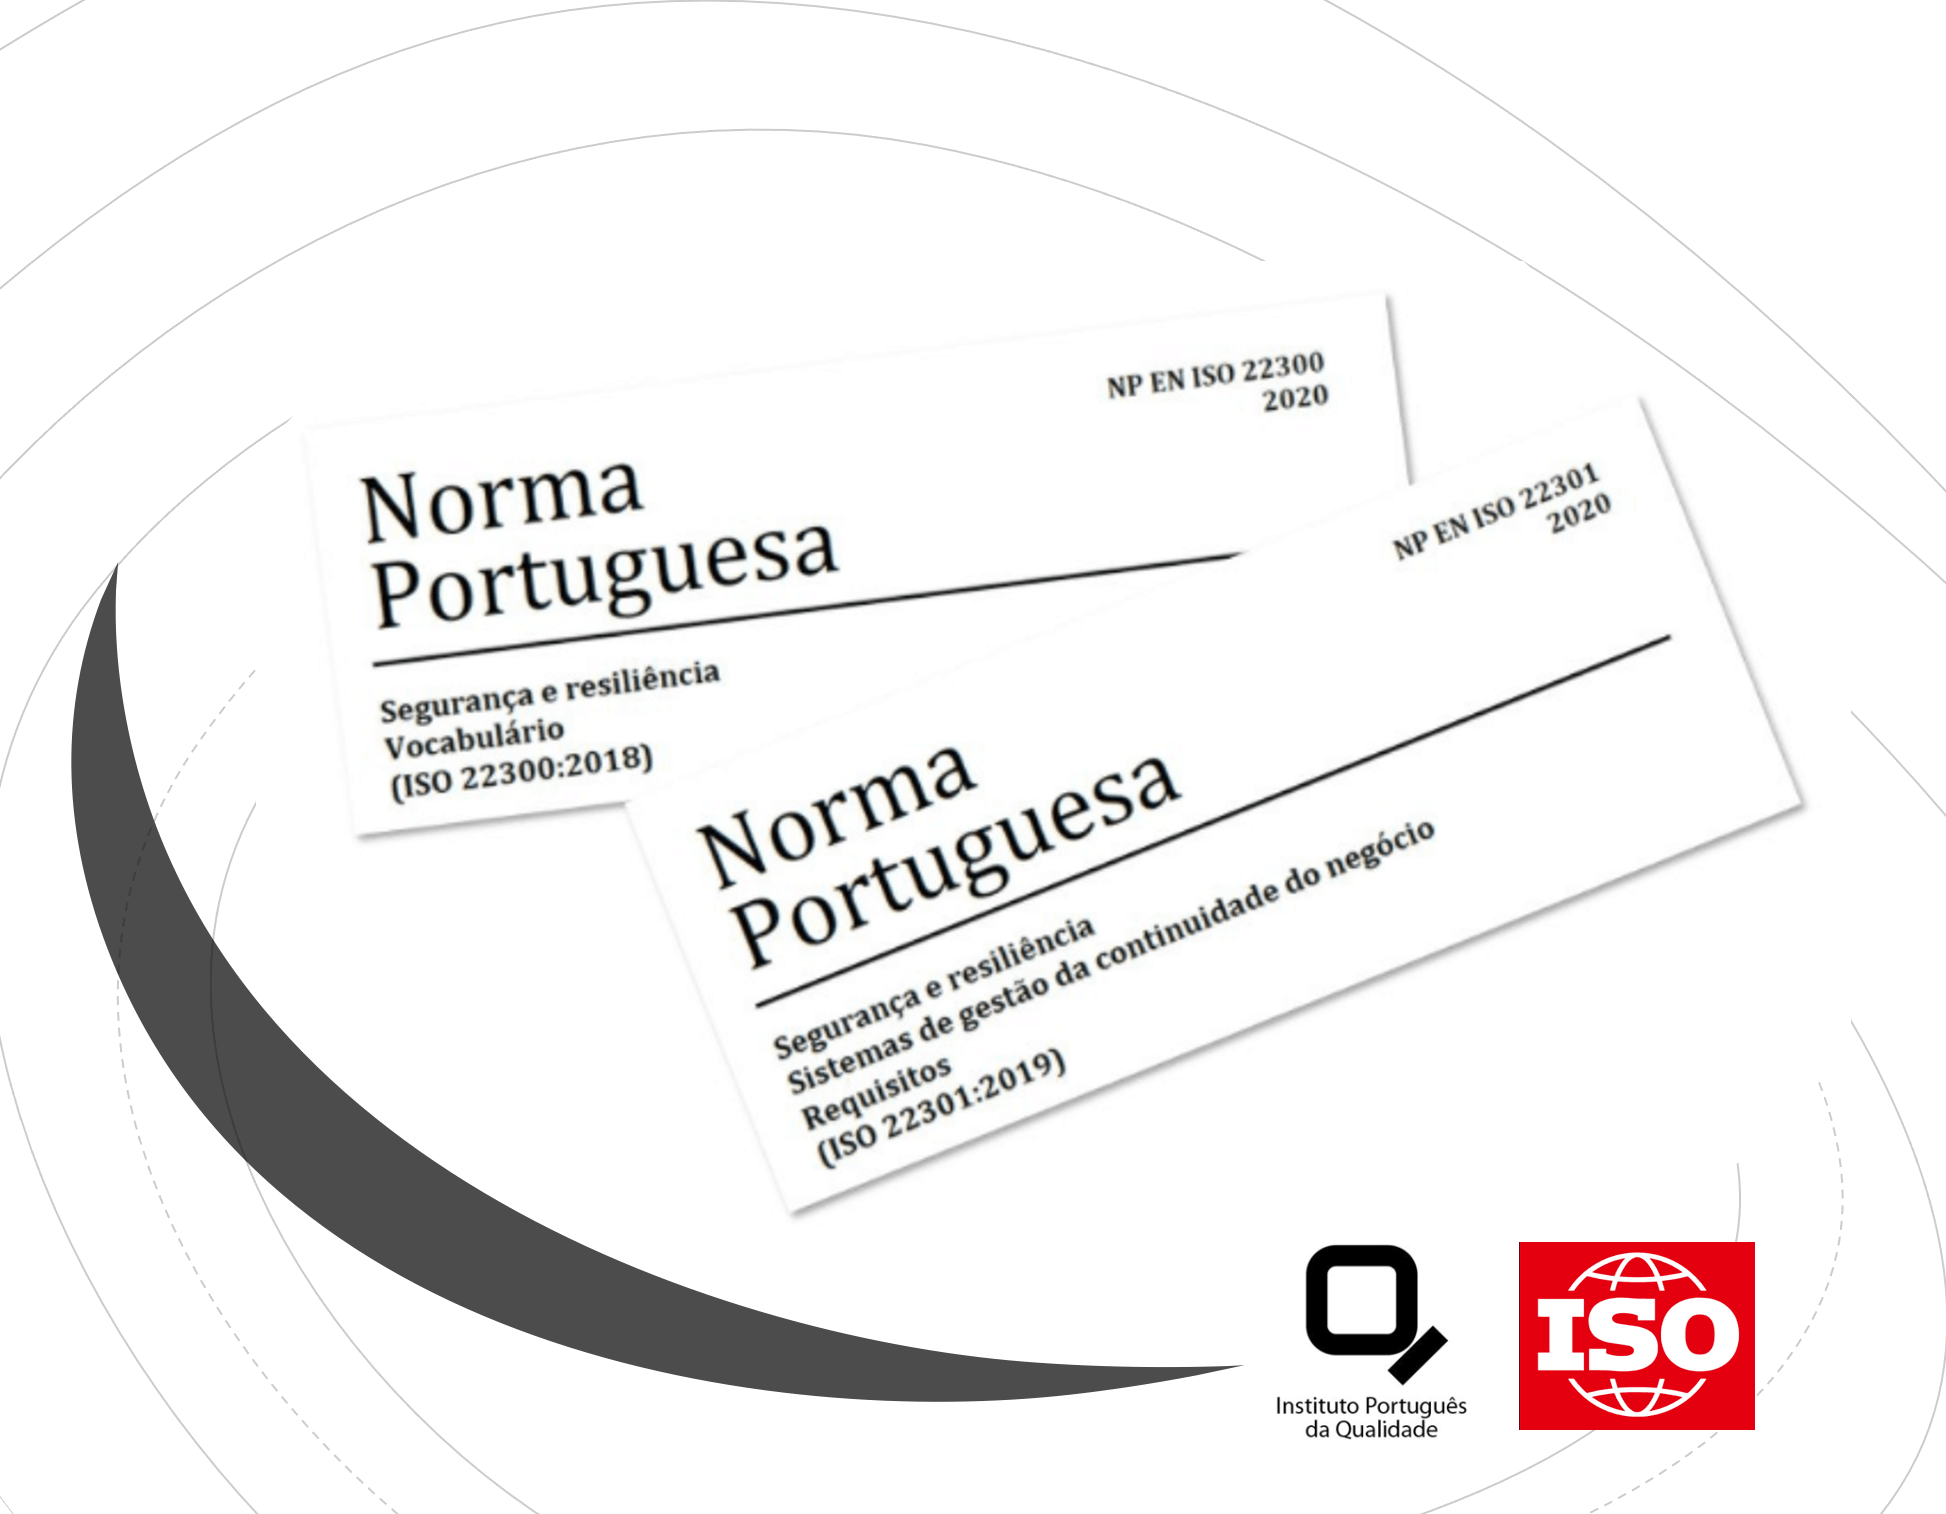 ISO standards published in Portuguese